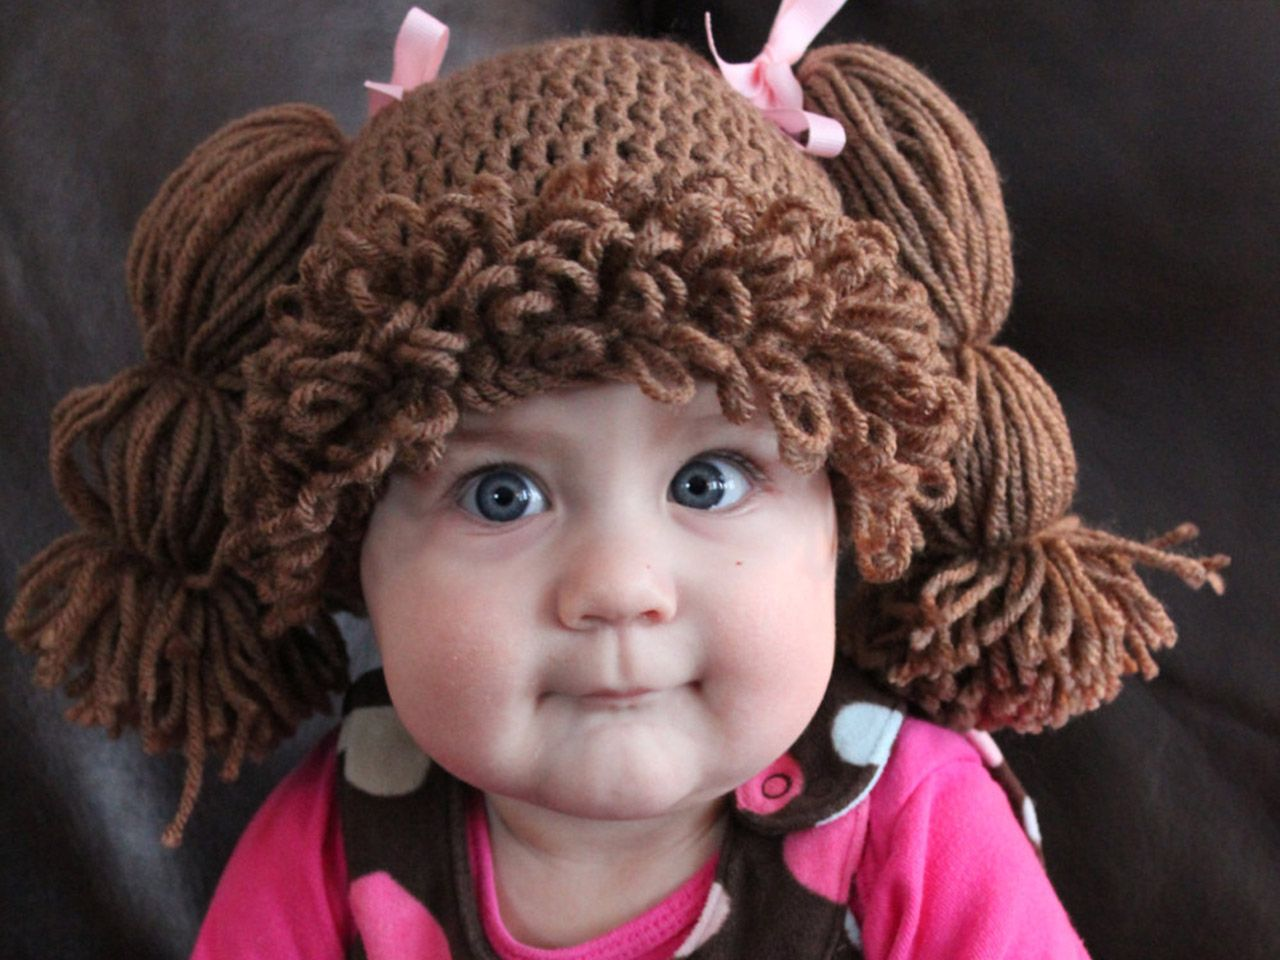 Cabbage Patch Kids wigs for babies go viral -- is this too cute